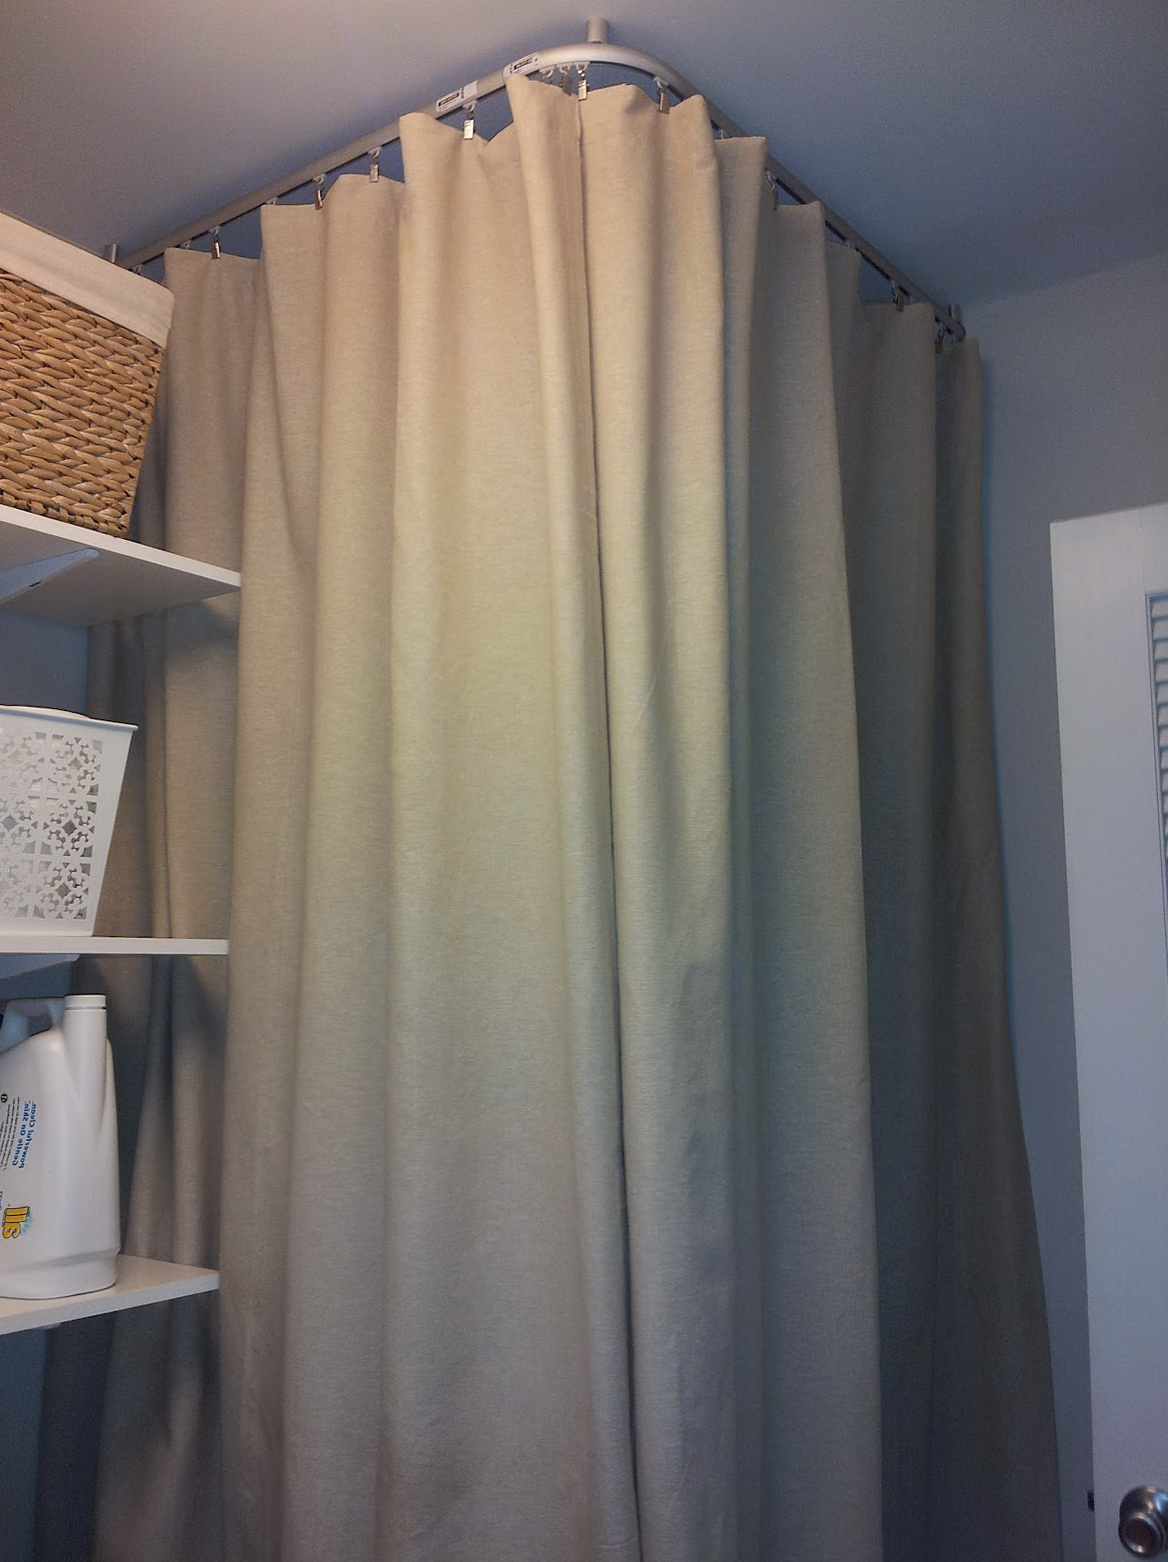 Ceiling Mounted Curtain Tracks Home Depot